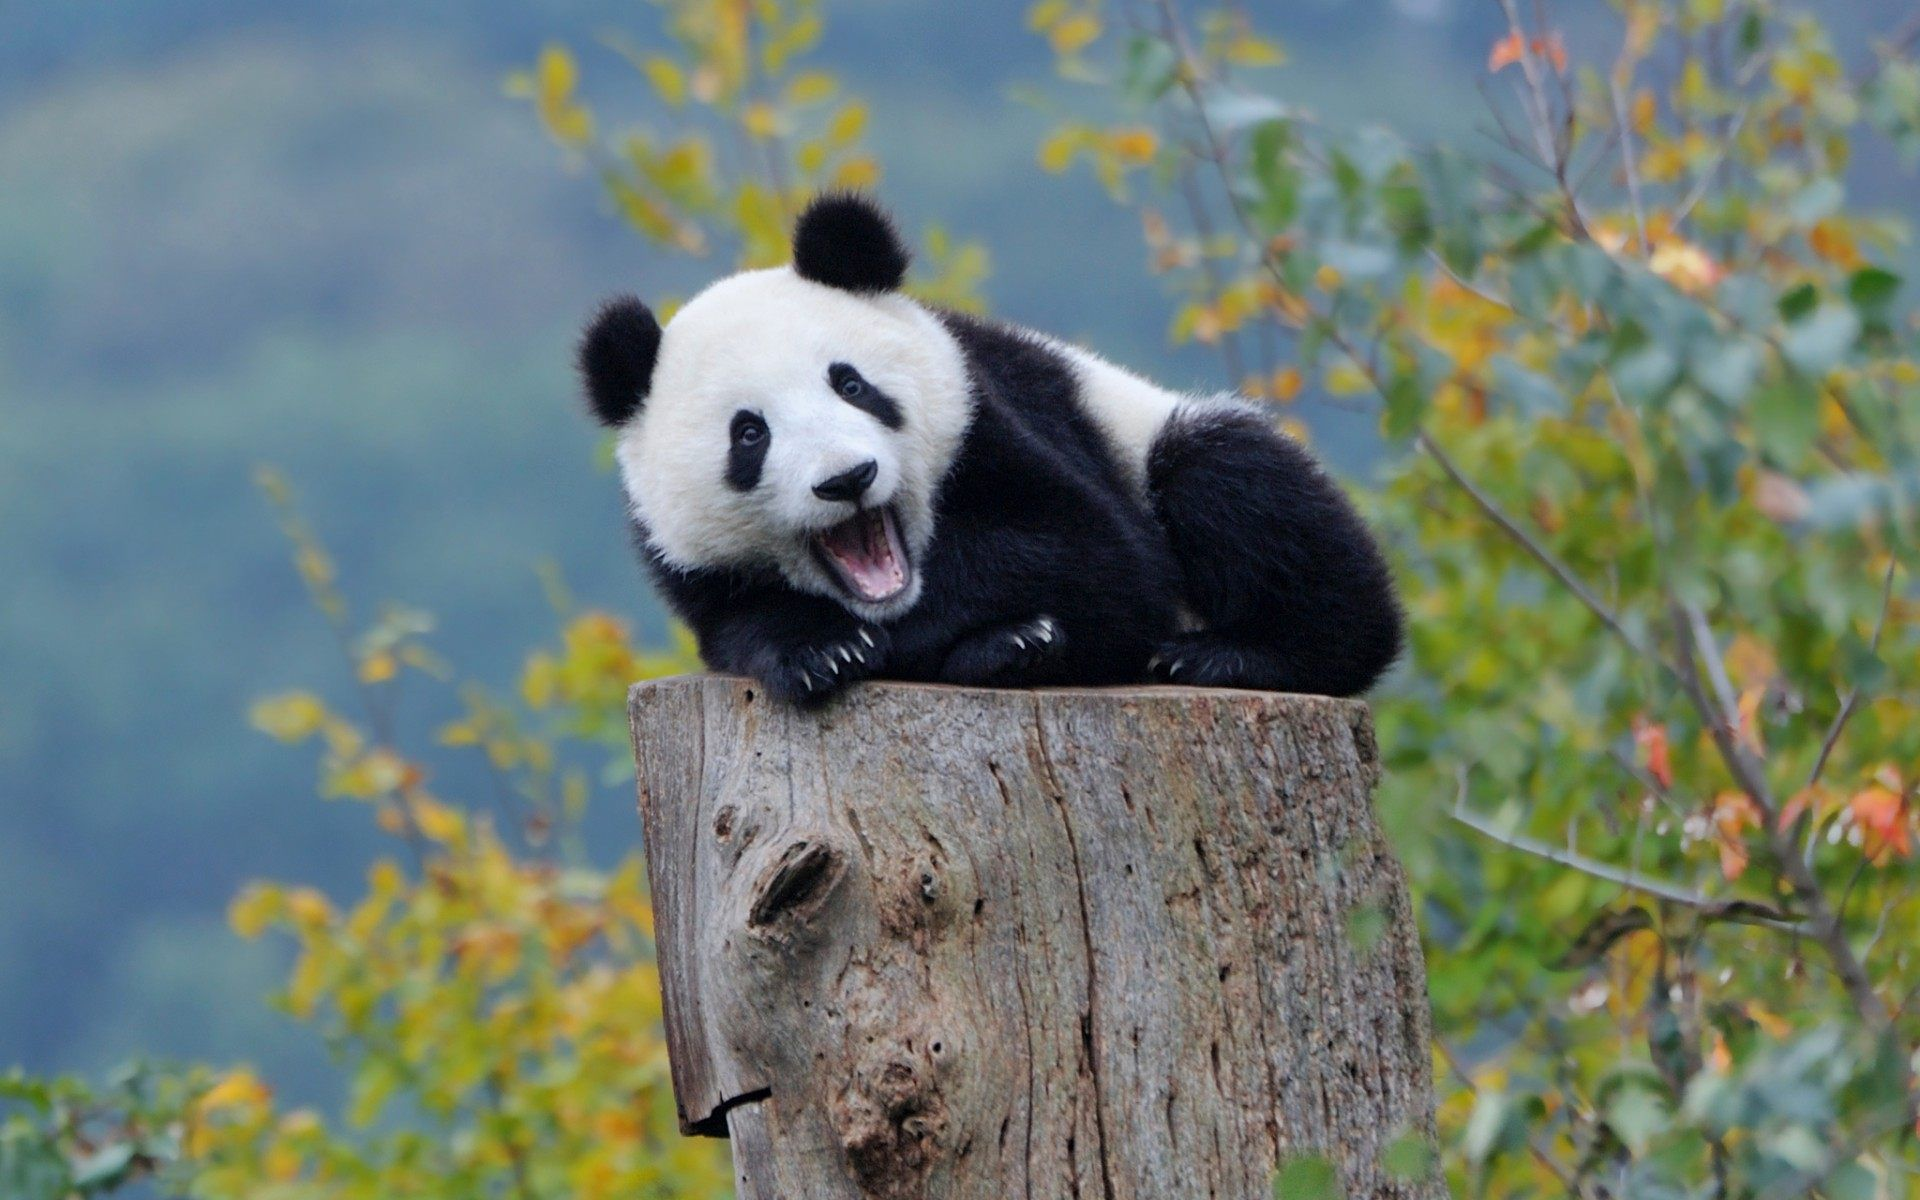 panda animal desktop wallpaper hd 62840 1920x1200 px ~ hdwallsource